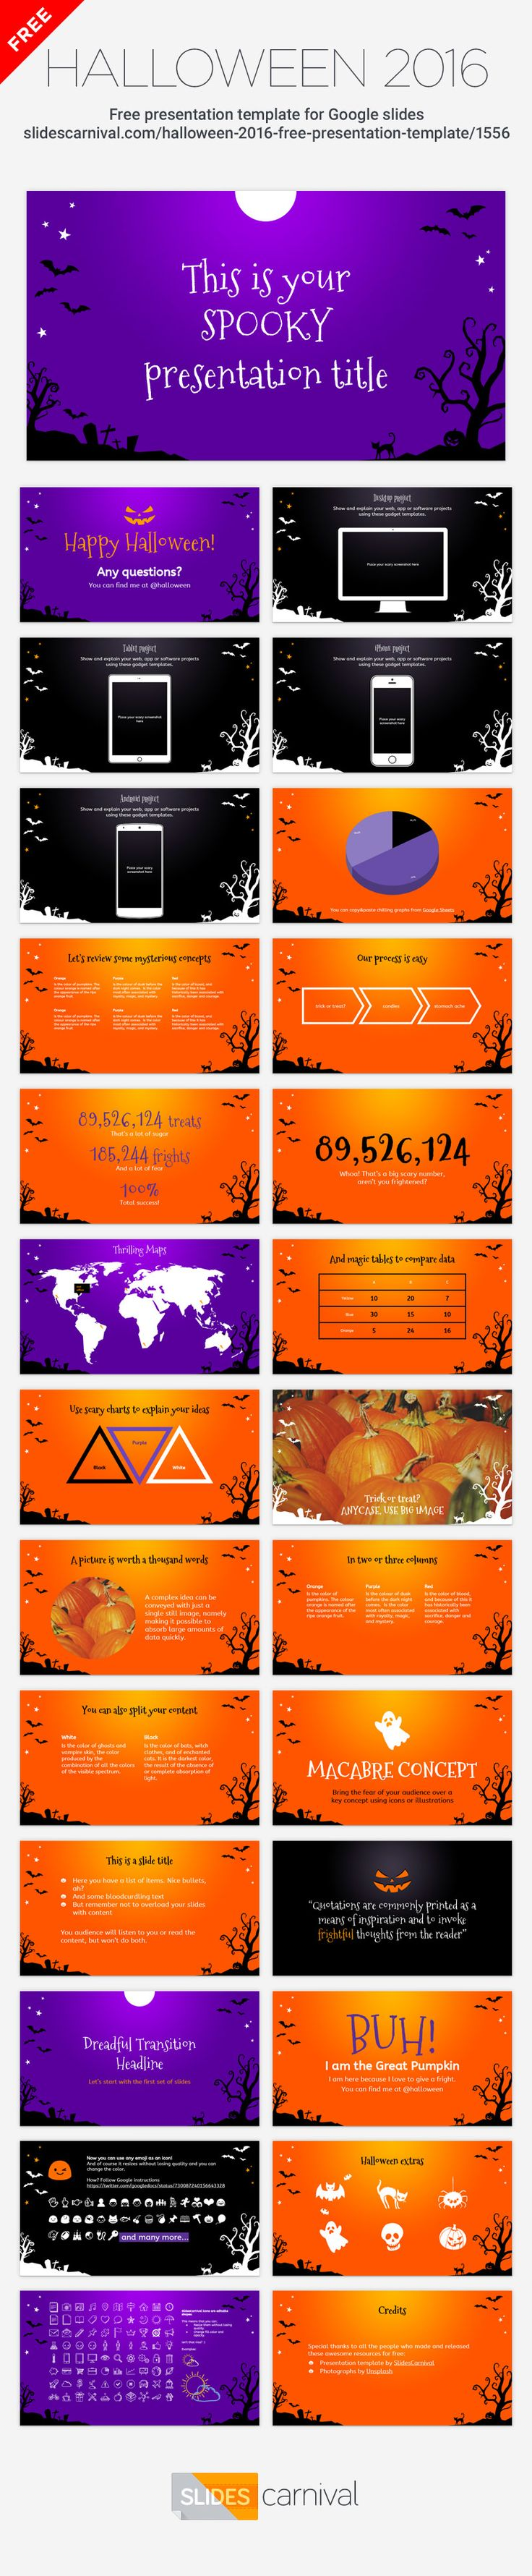 Every year we celebrate Halloween, and you can enliven your classes and meetings using this free presentation template that works both in Google Slides and Powerpoint. With its purple and orange slides and spooky Halloween landscape it will make everybody smile (or shake!). Includes pumpkins, bats, death trees, scary tombs, black cats and lots of fear. Happy Halloween!